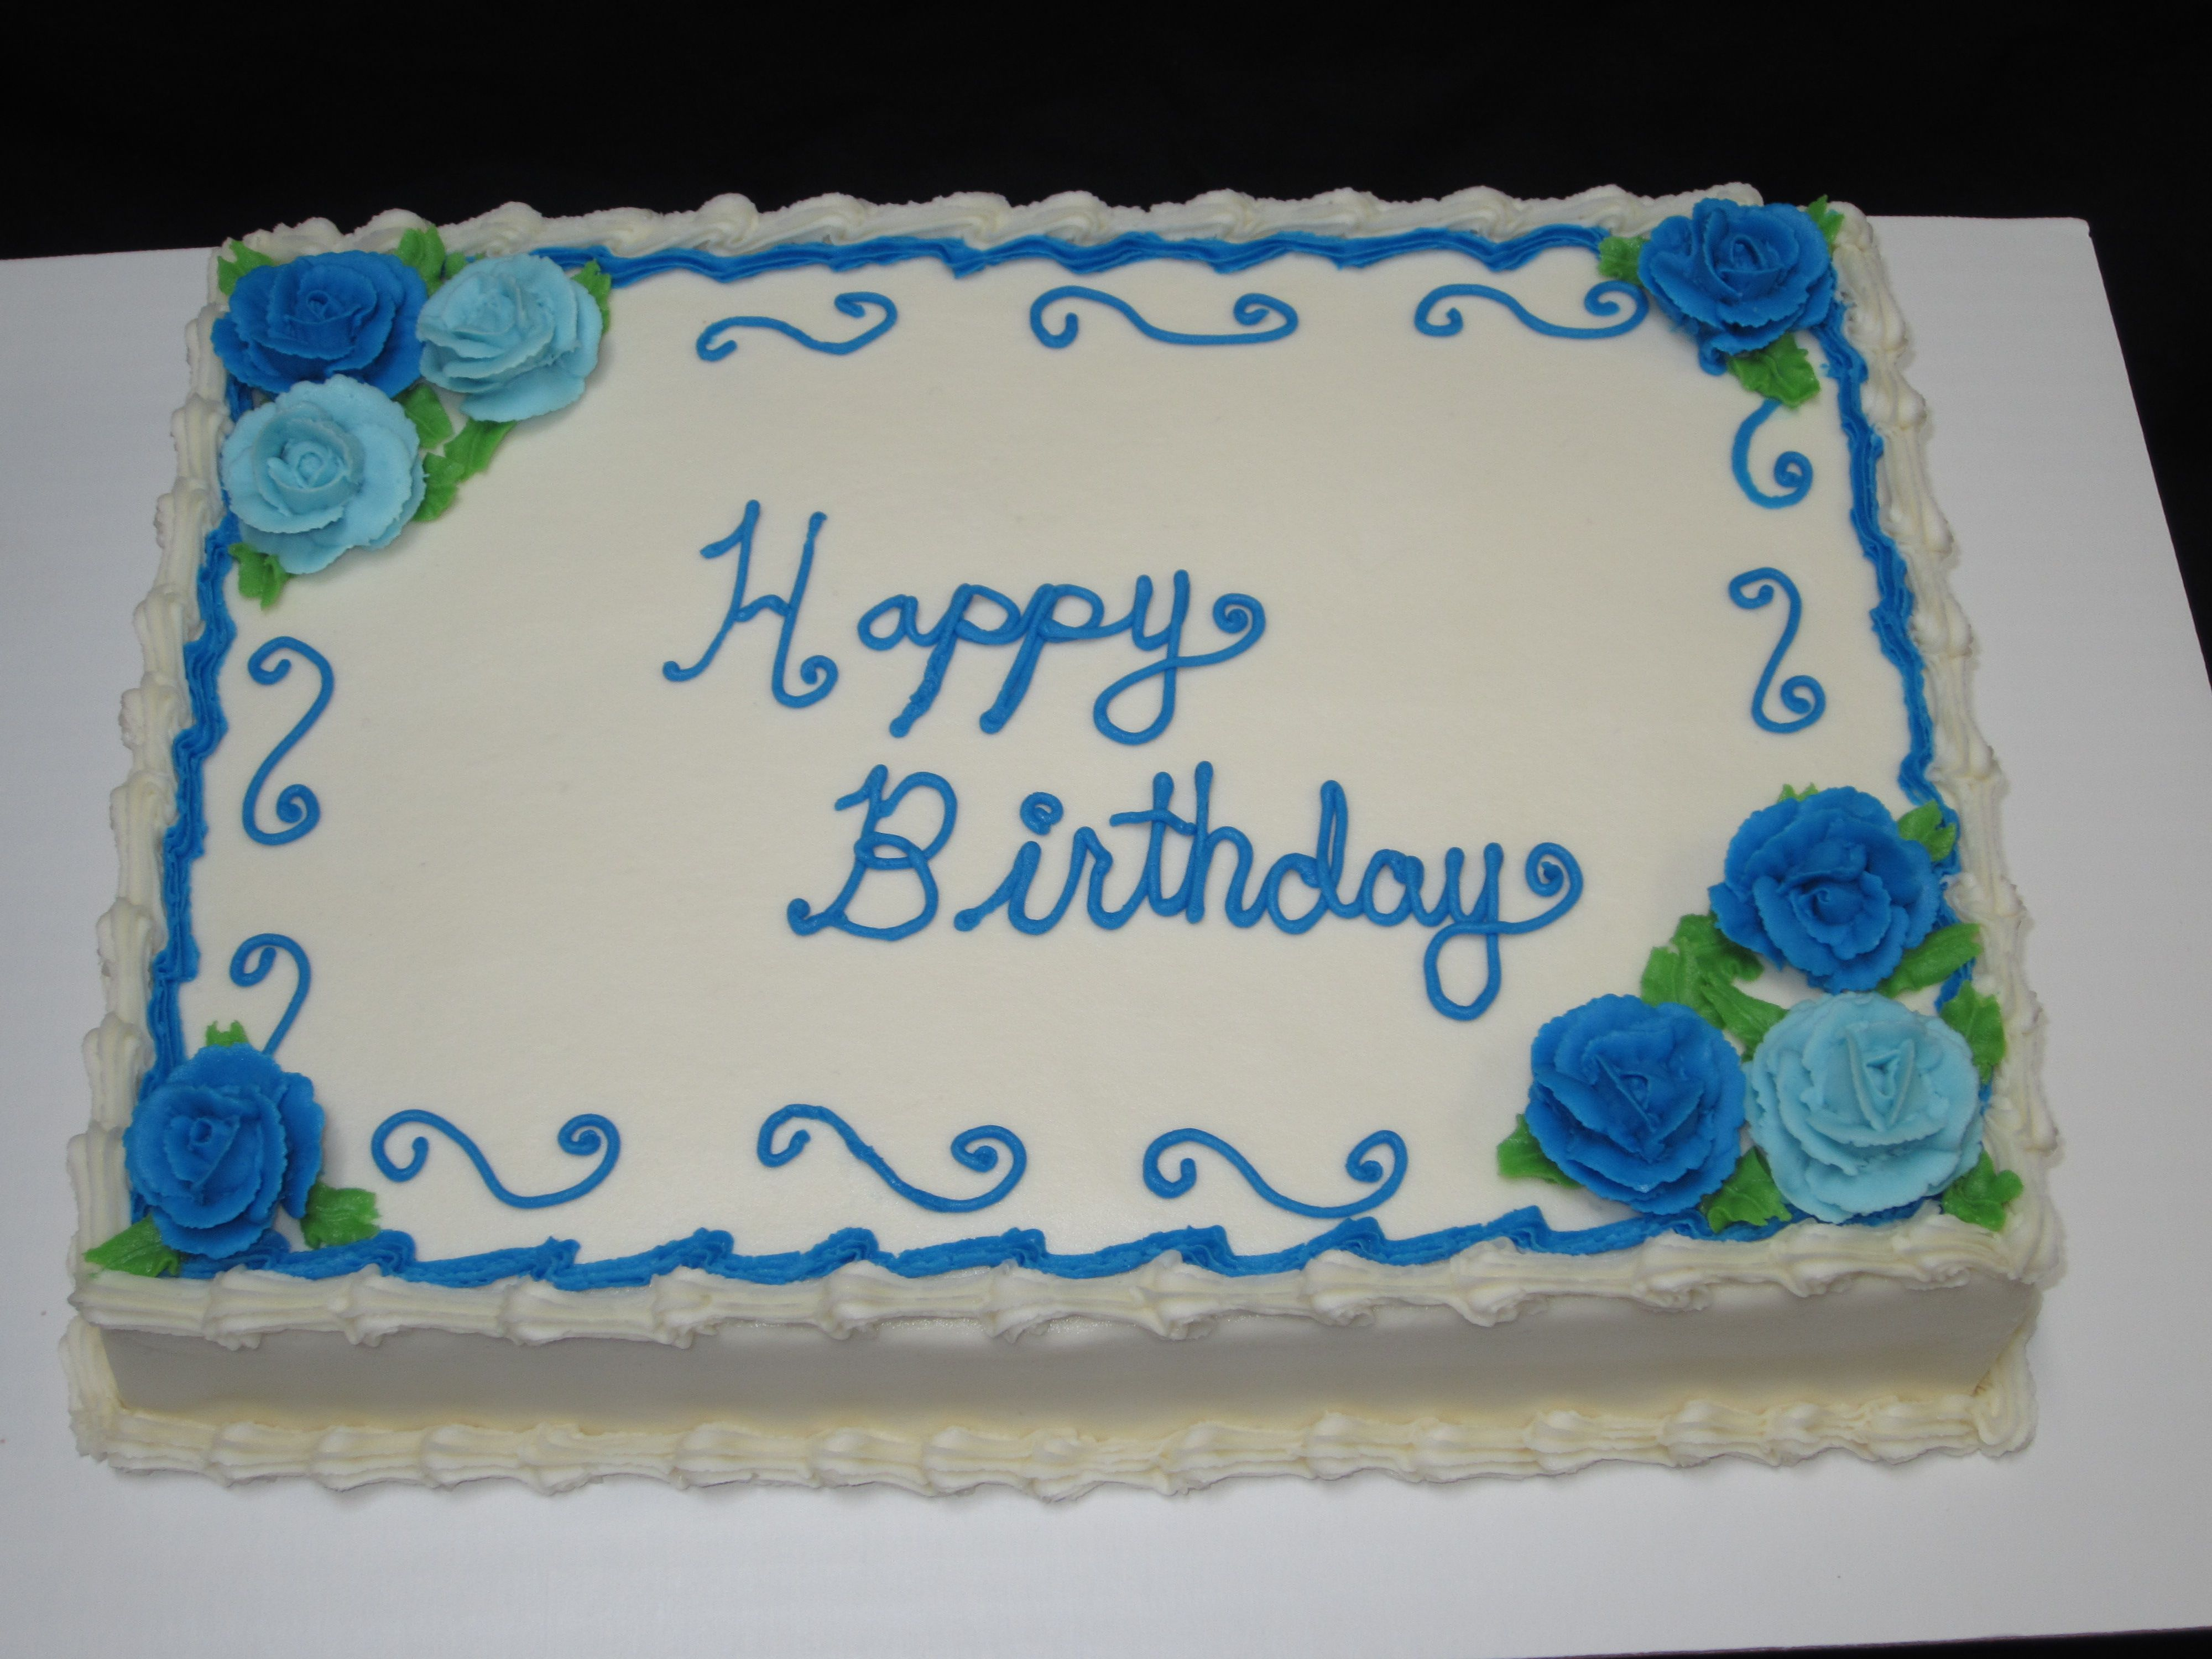 Stupendous Classic Sheet Cake With Blue Buttercream Roses For A Special Funny Birthday Cards Online Sheoxdamsfinfo